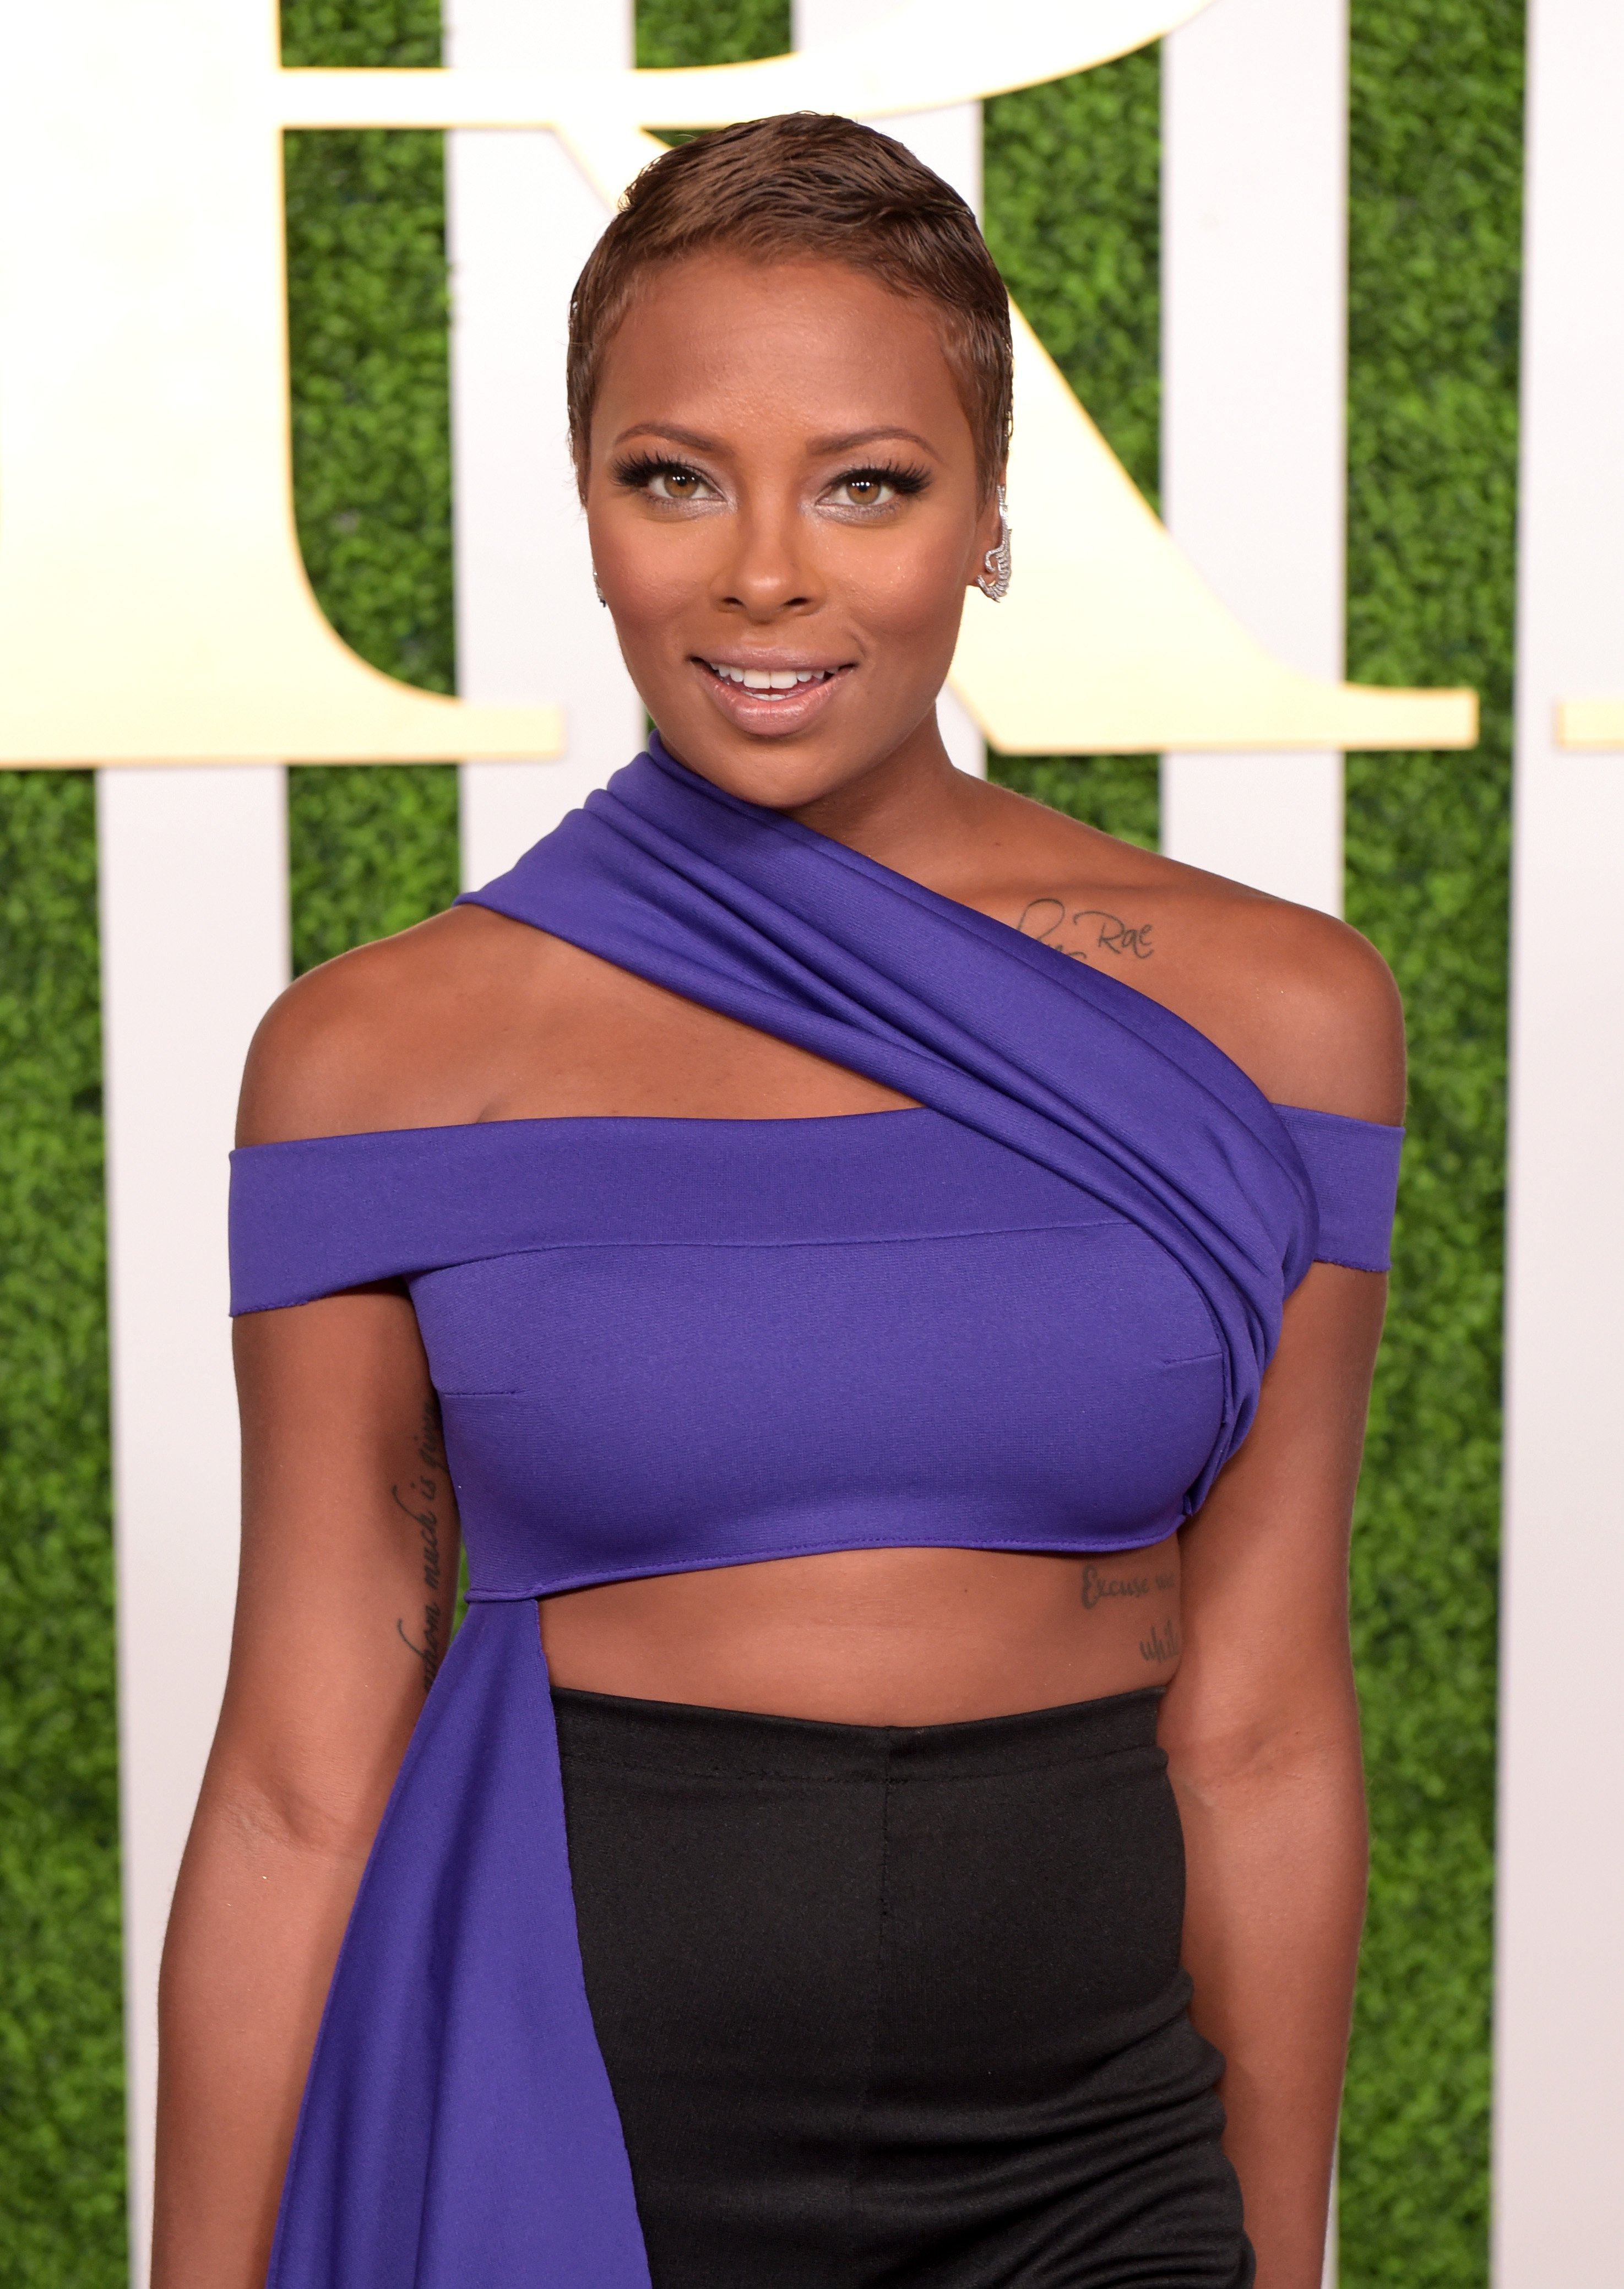 Eva Marcille at the 2015 BET Awards Debra Lee Pre-Dinner at Sunset Tower Hotel on June 24, 2015, Los Angeles, California. | Source: Getty Images